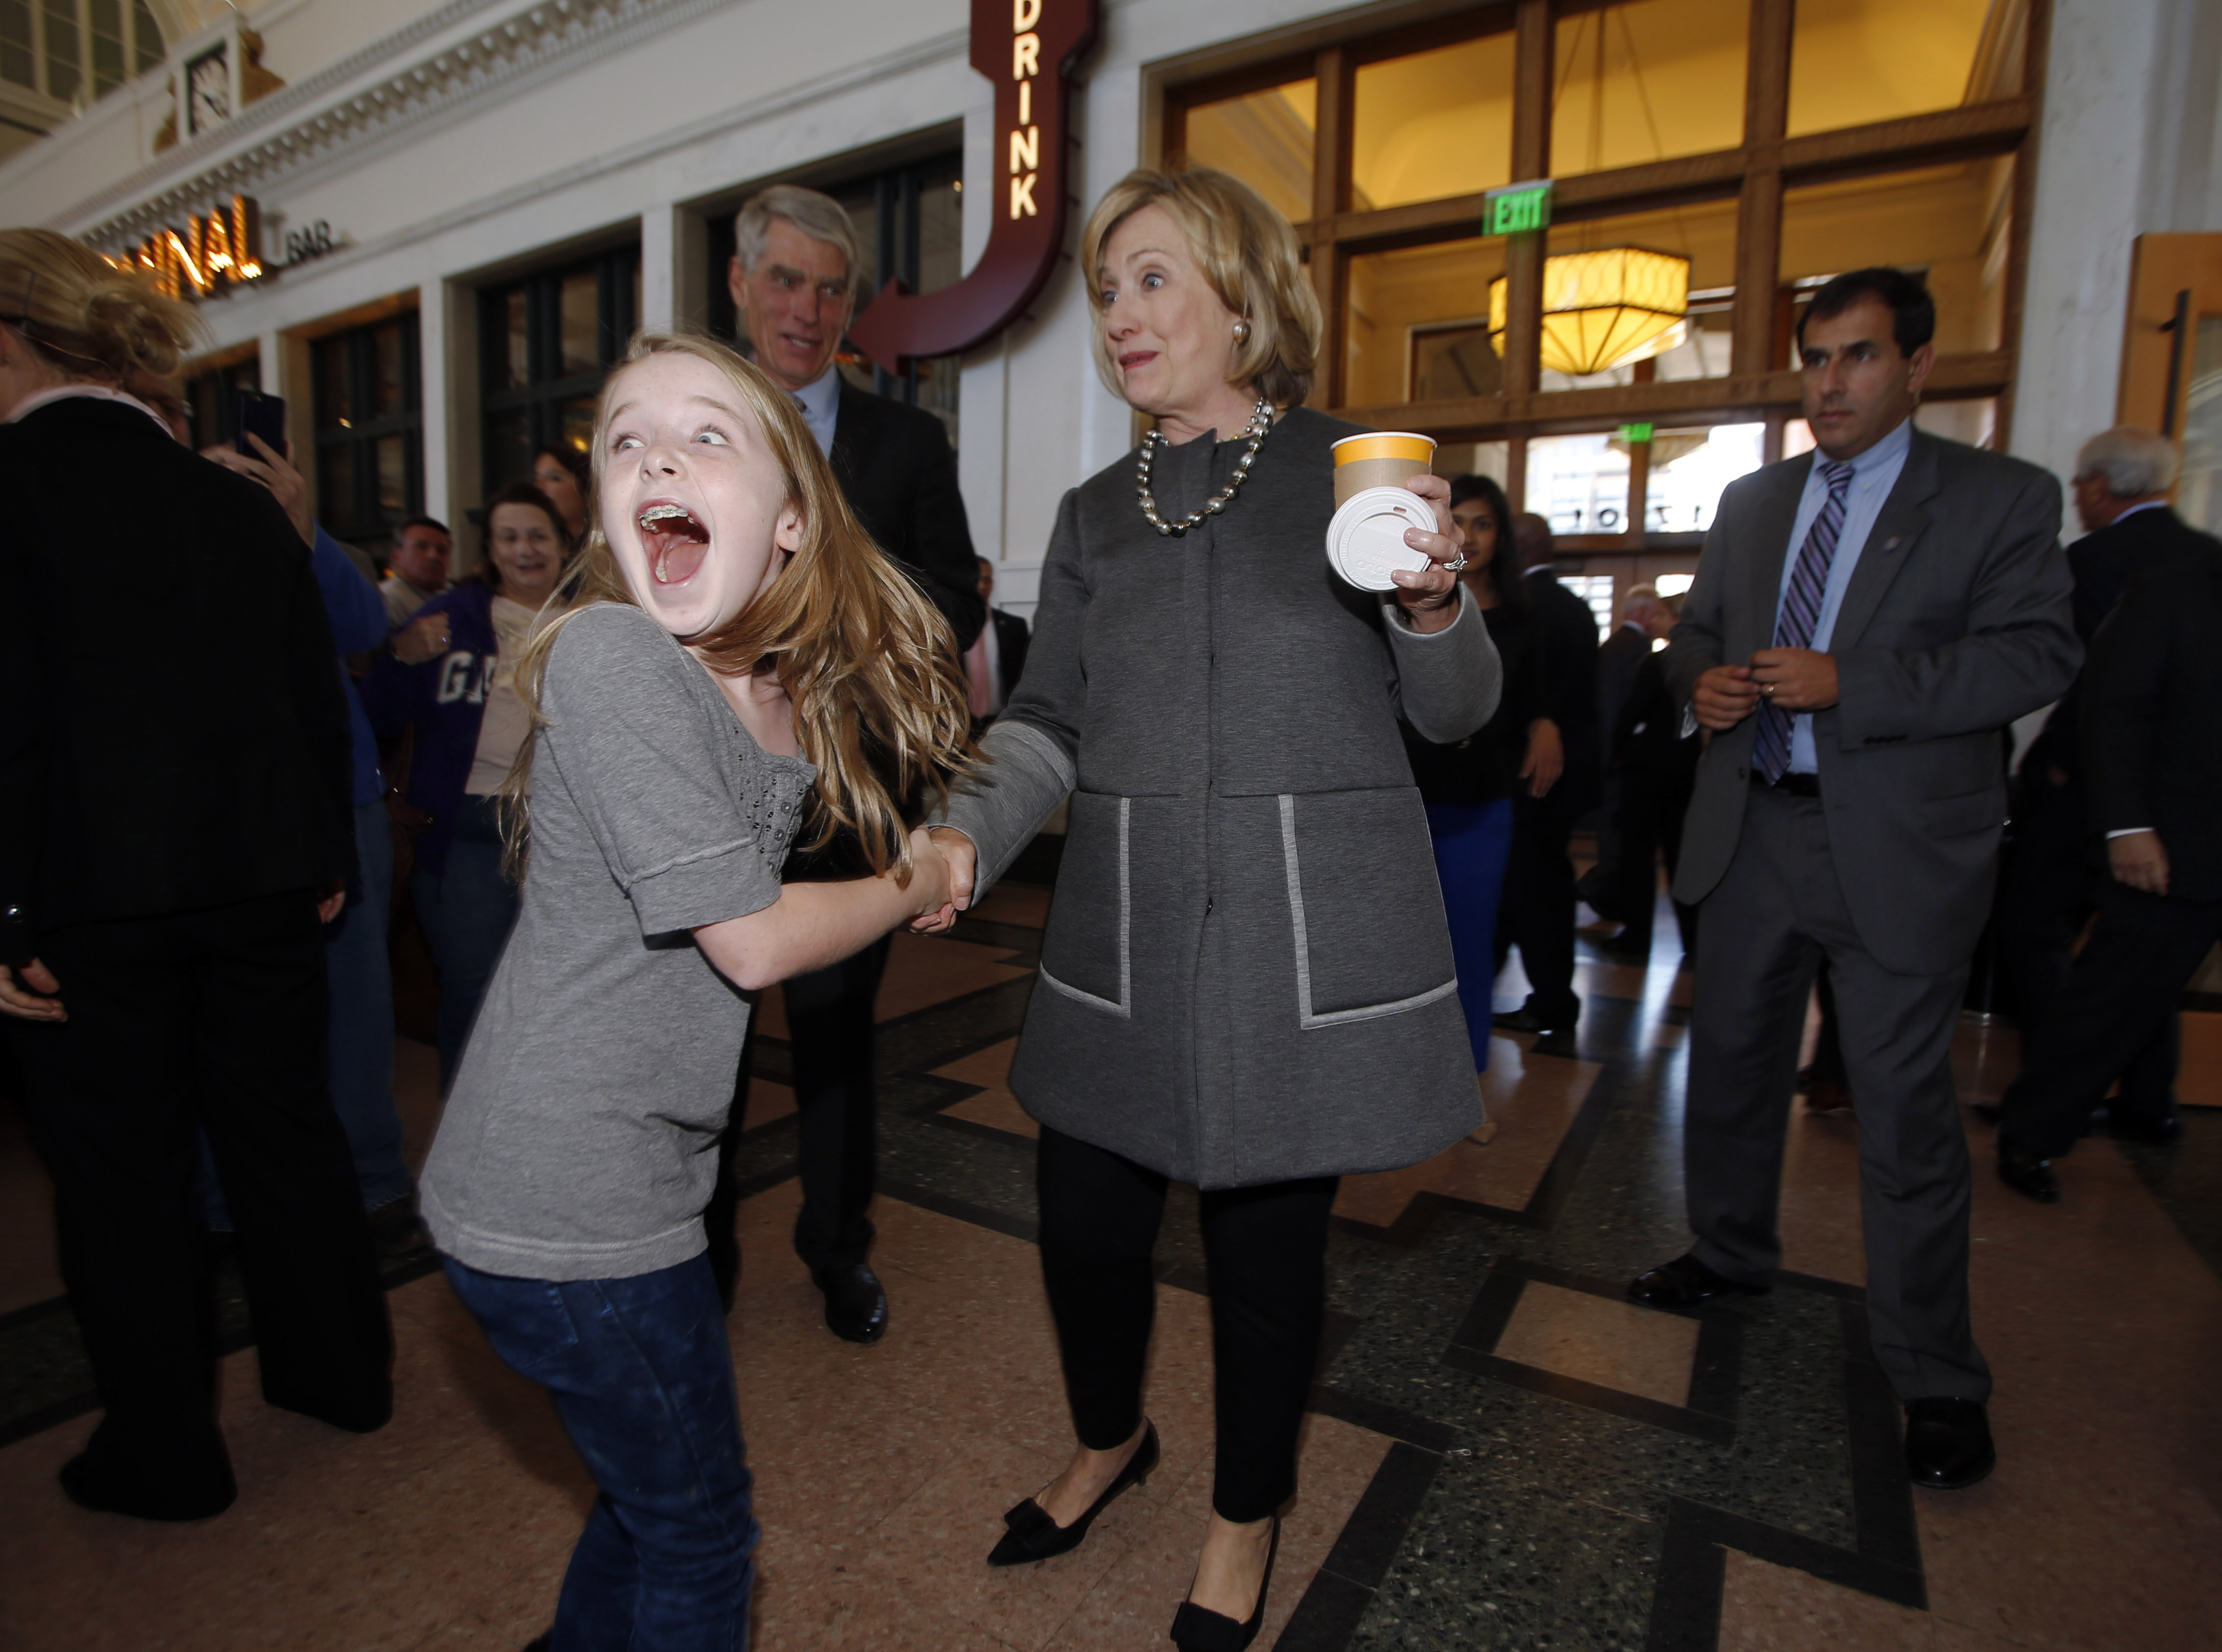 Excited Girl Meets Hillary Clinton During Colorado Campaining Time